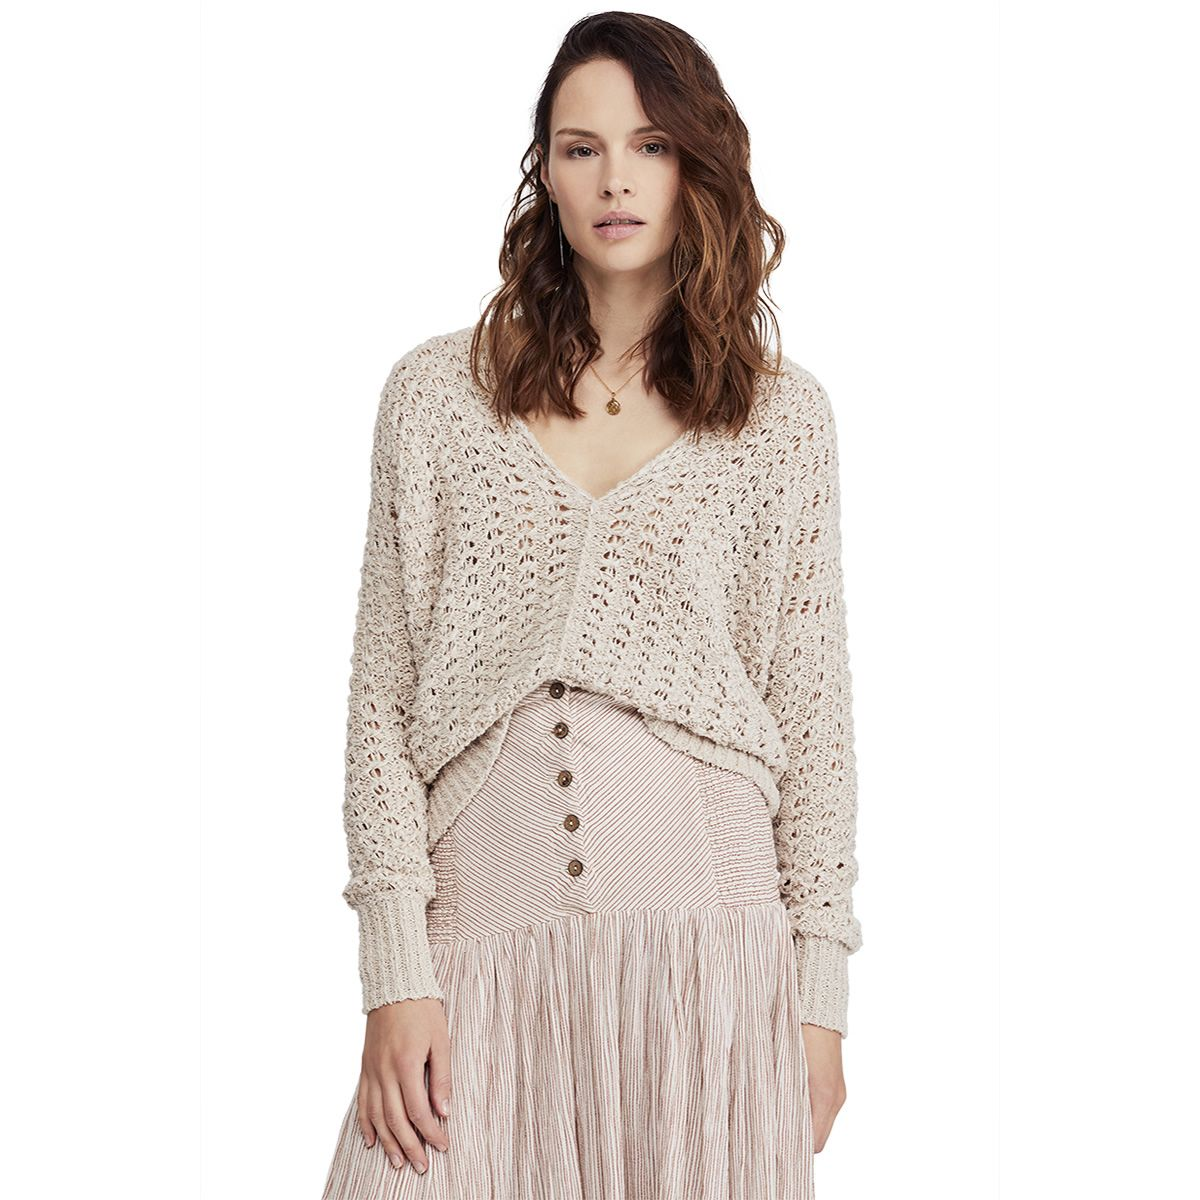 9f261071c092 Free People Clothing - Womens Apparel - Macy s